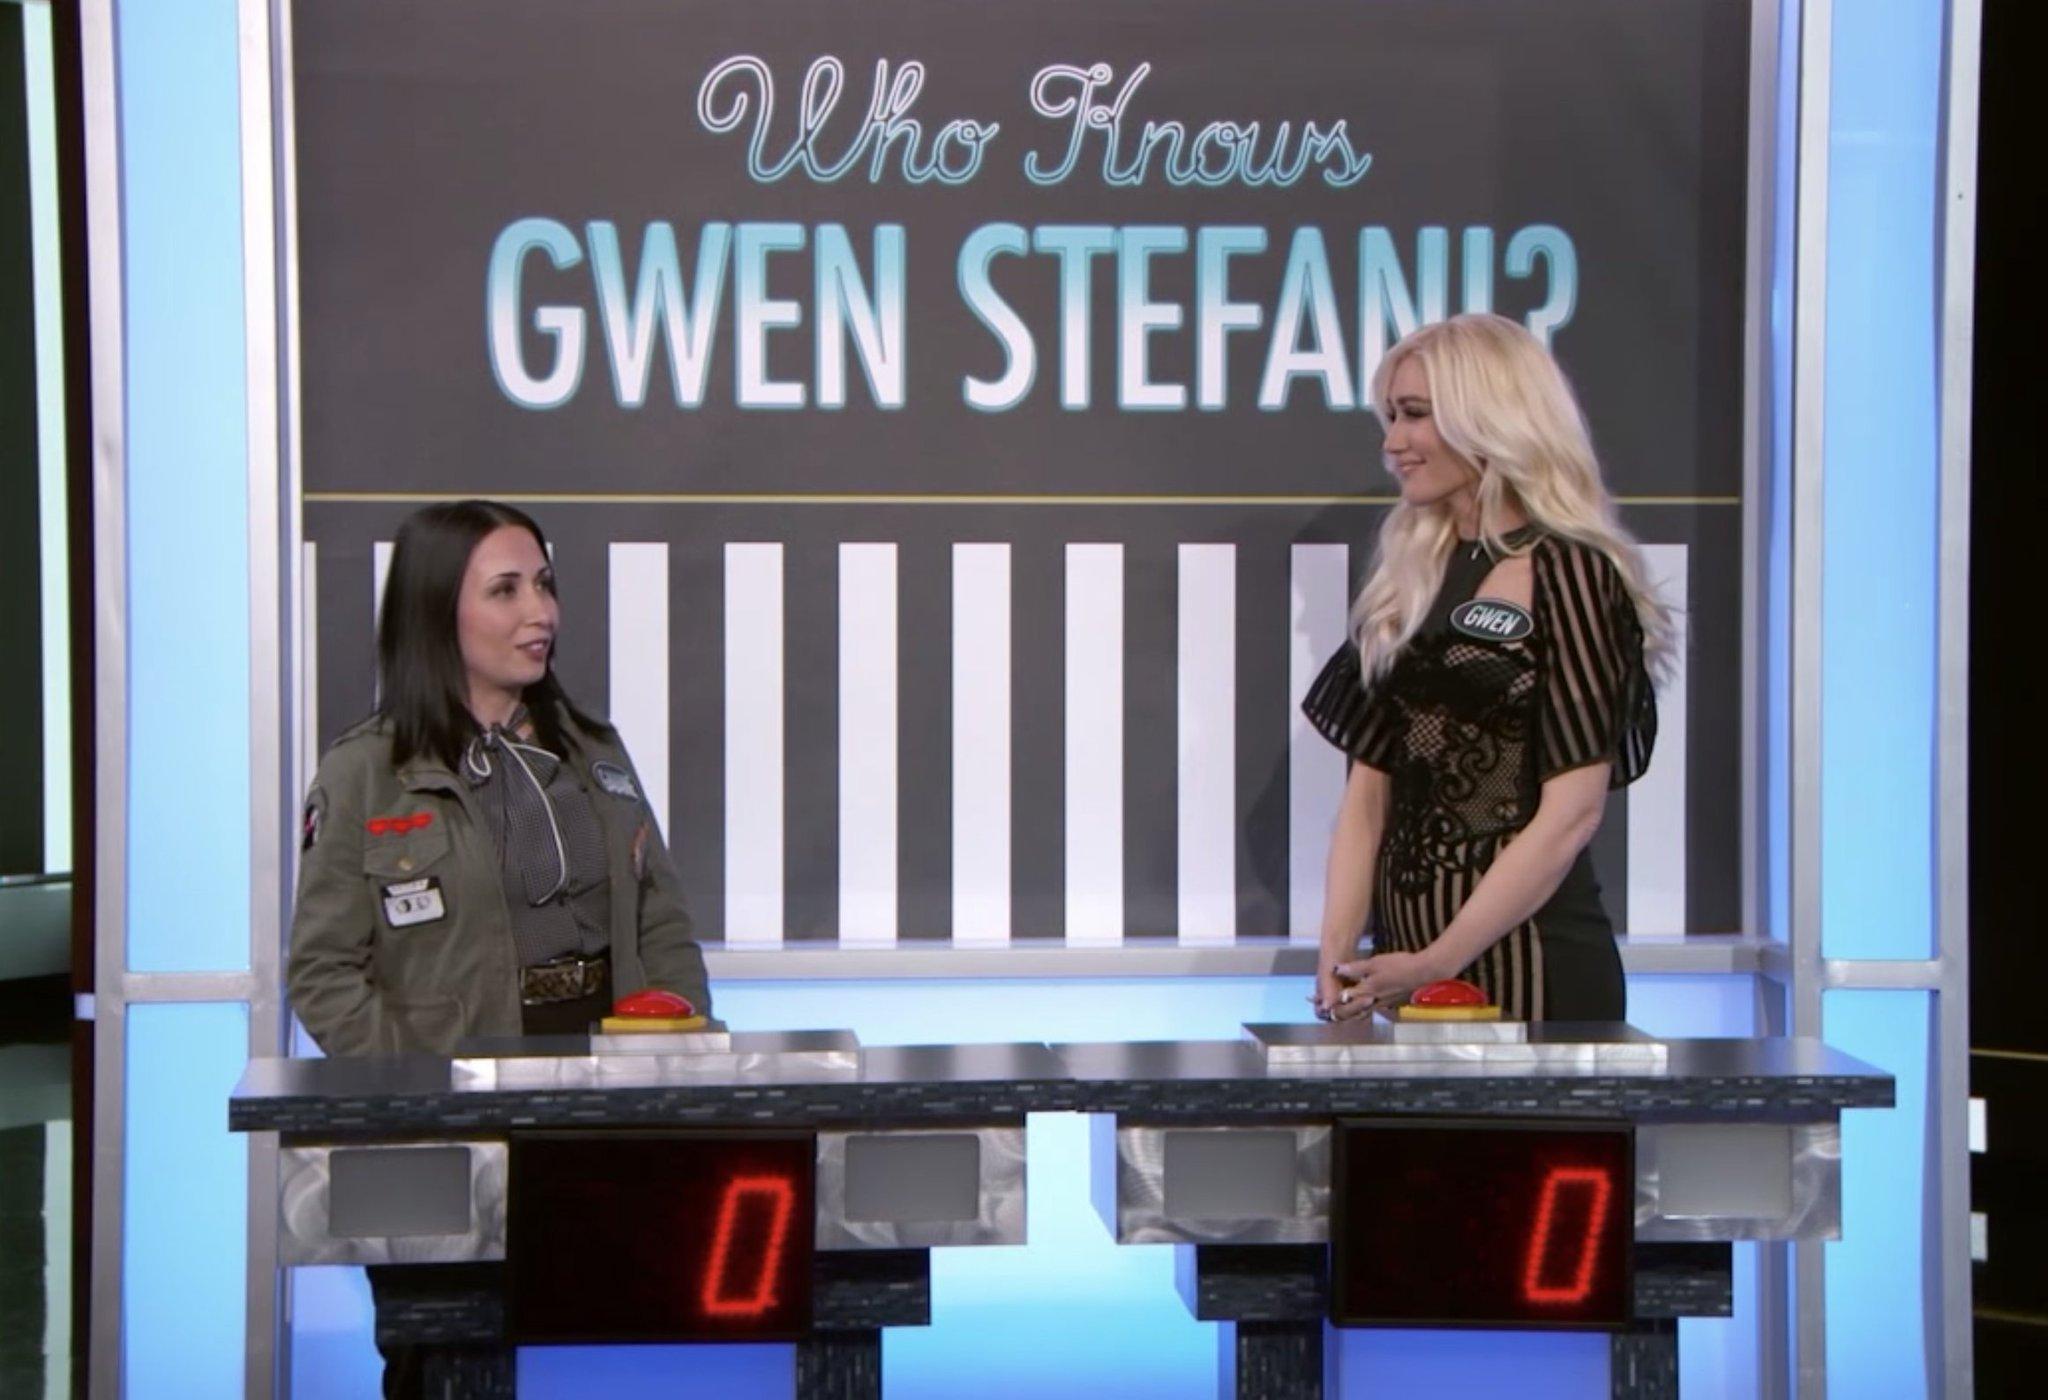 Watch this woman beat @gwenstefani at Gwen Stefani trivia https://t.co/aLPBHm9RcE https://t.co/EPnAbISnUn